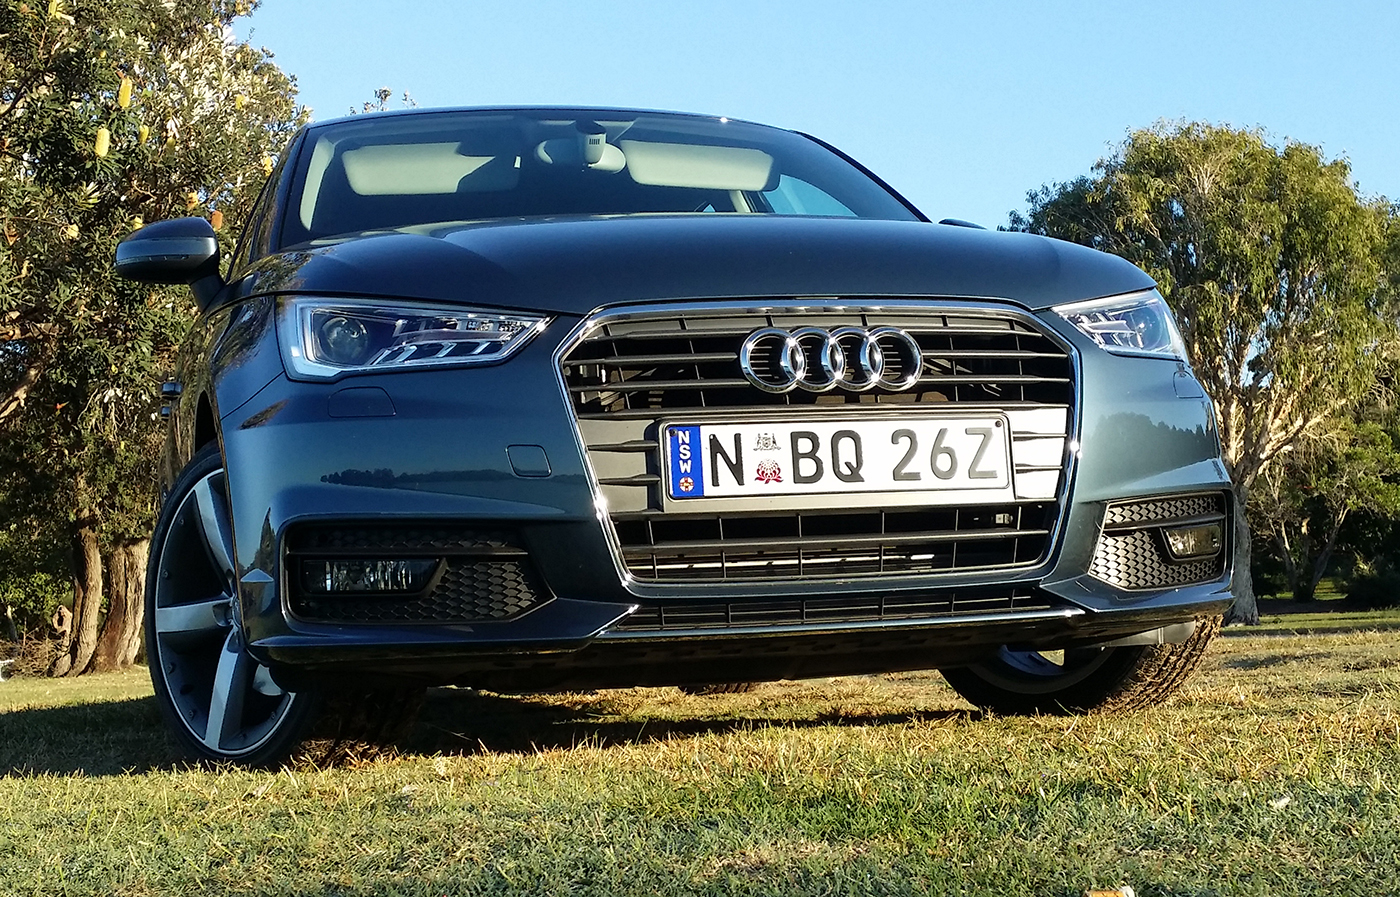 Audi A1 Sportback Review: 1.0 TFSI, 1.4 TFSI Sport, 1.8 TFSI S Line - Micro Magic